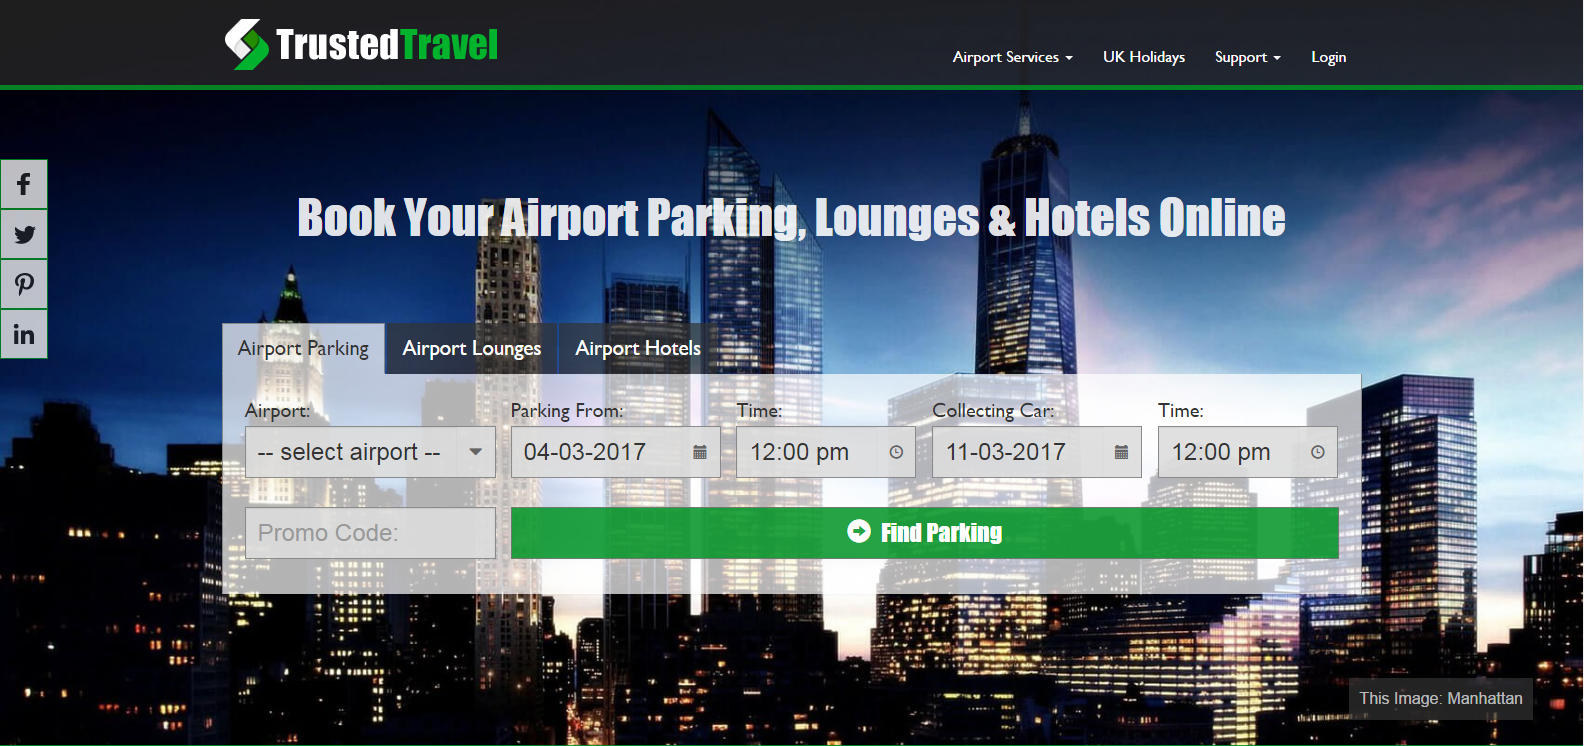 Manchester Airport Hotels With Parking Deals